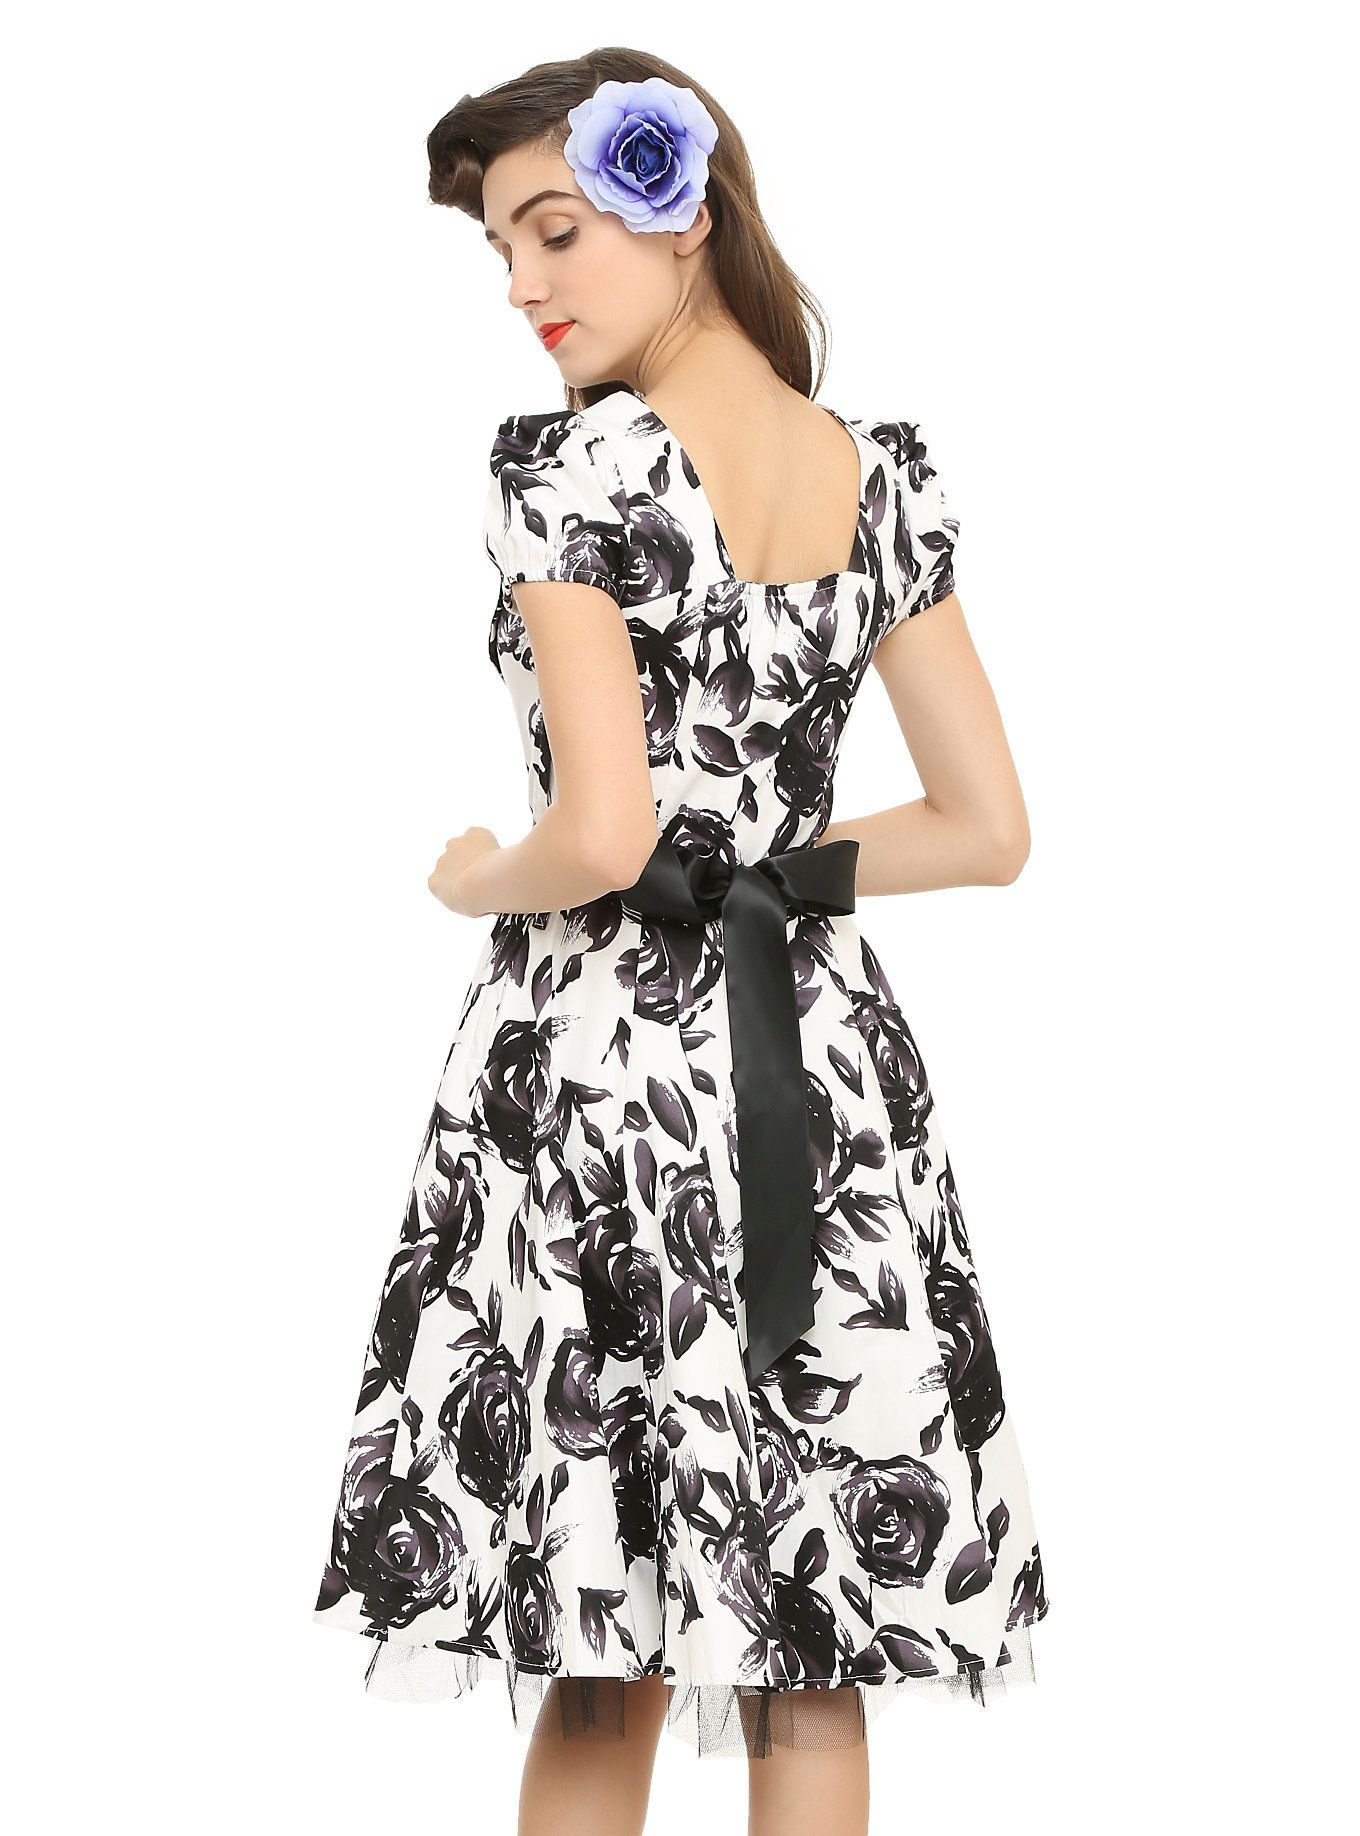 Black & White Floral Dress,